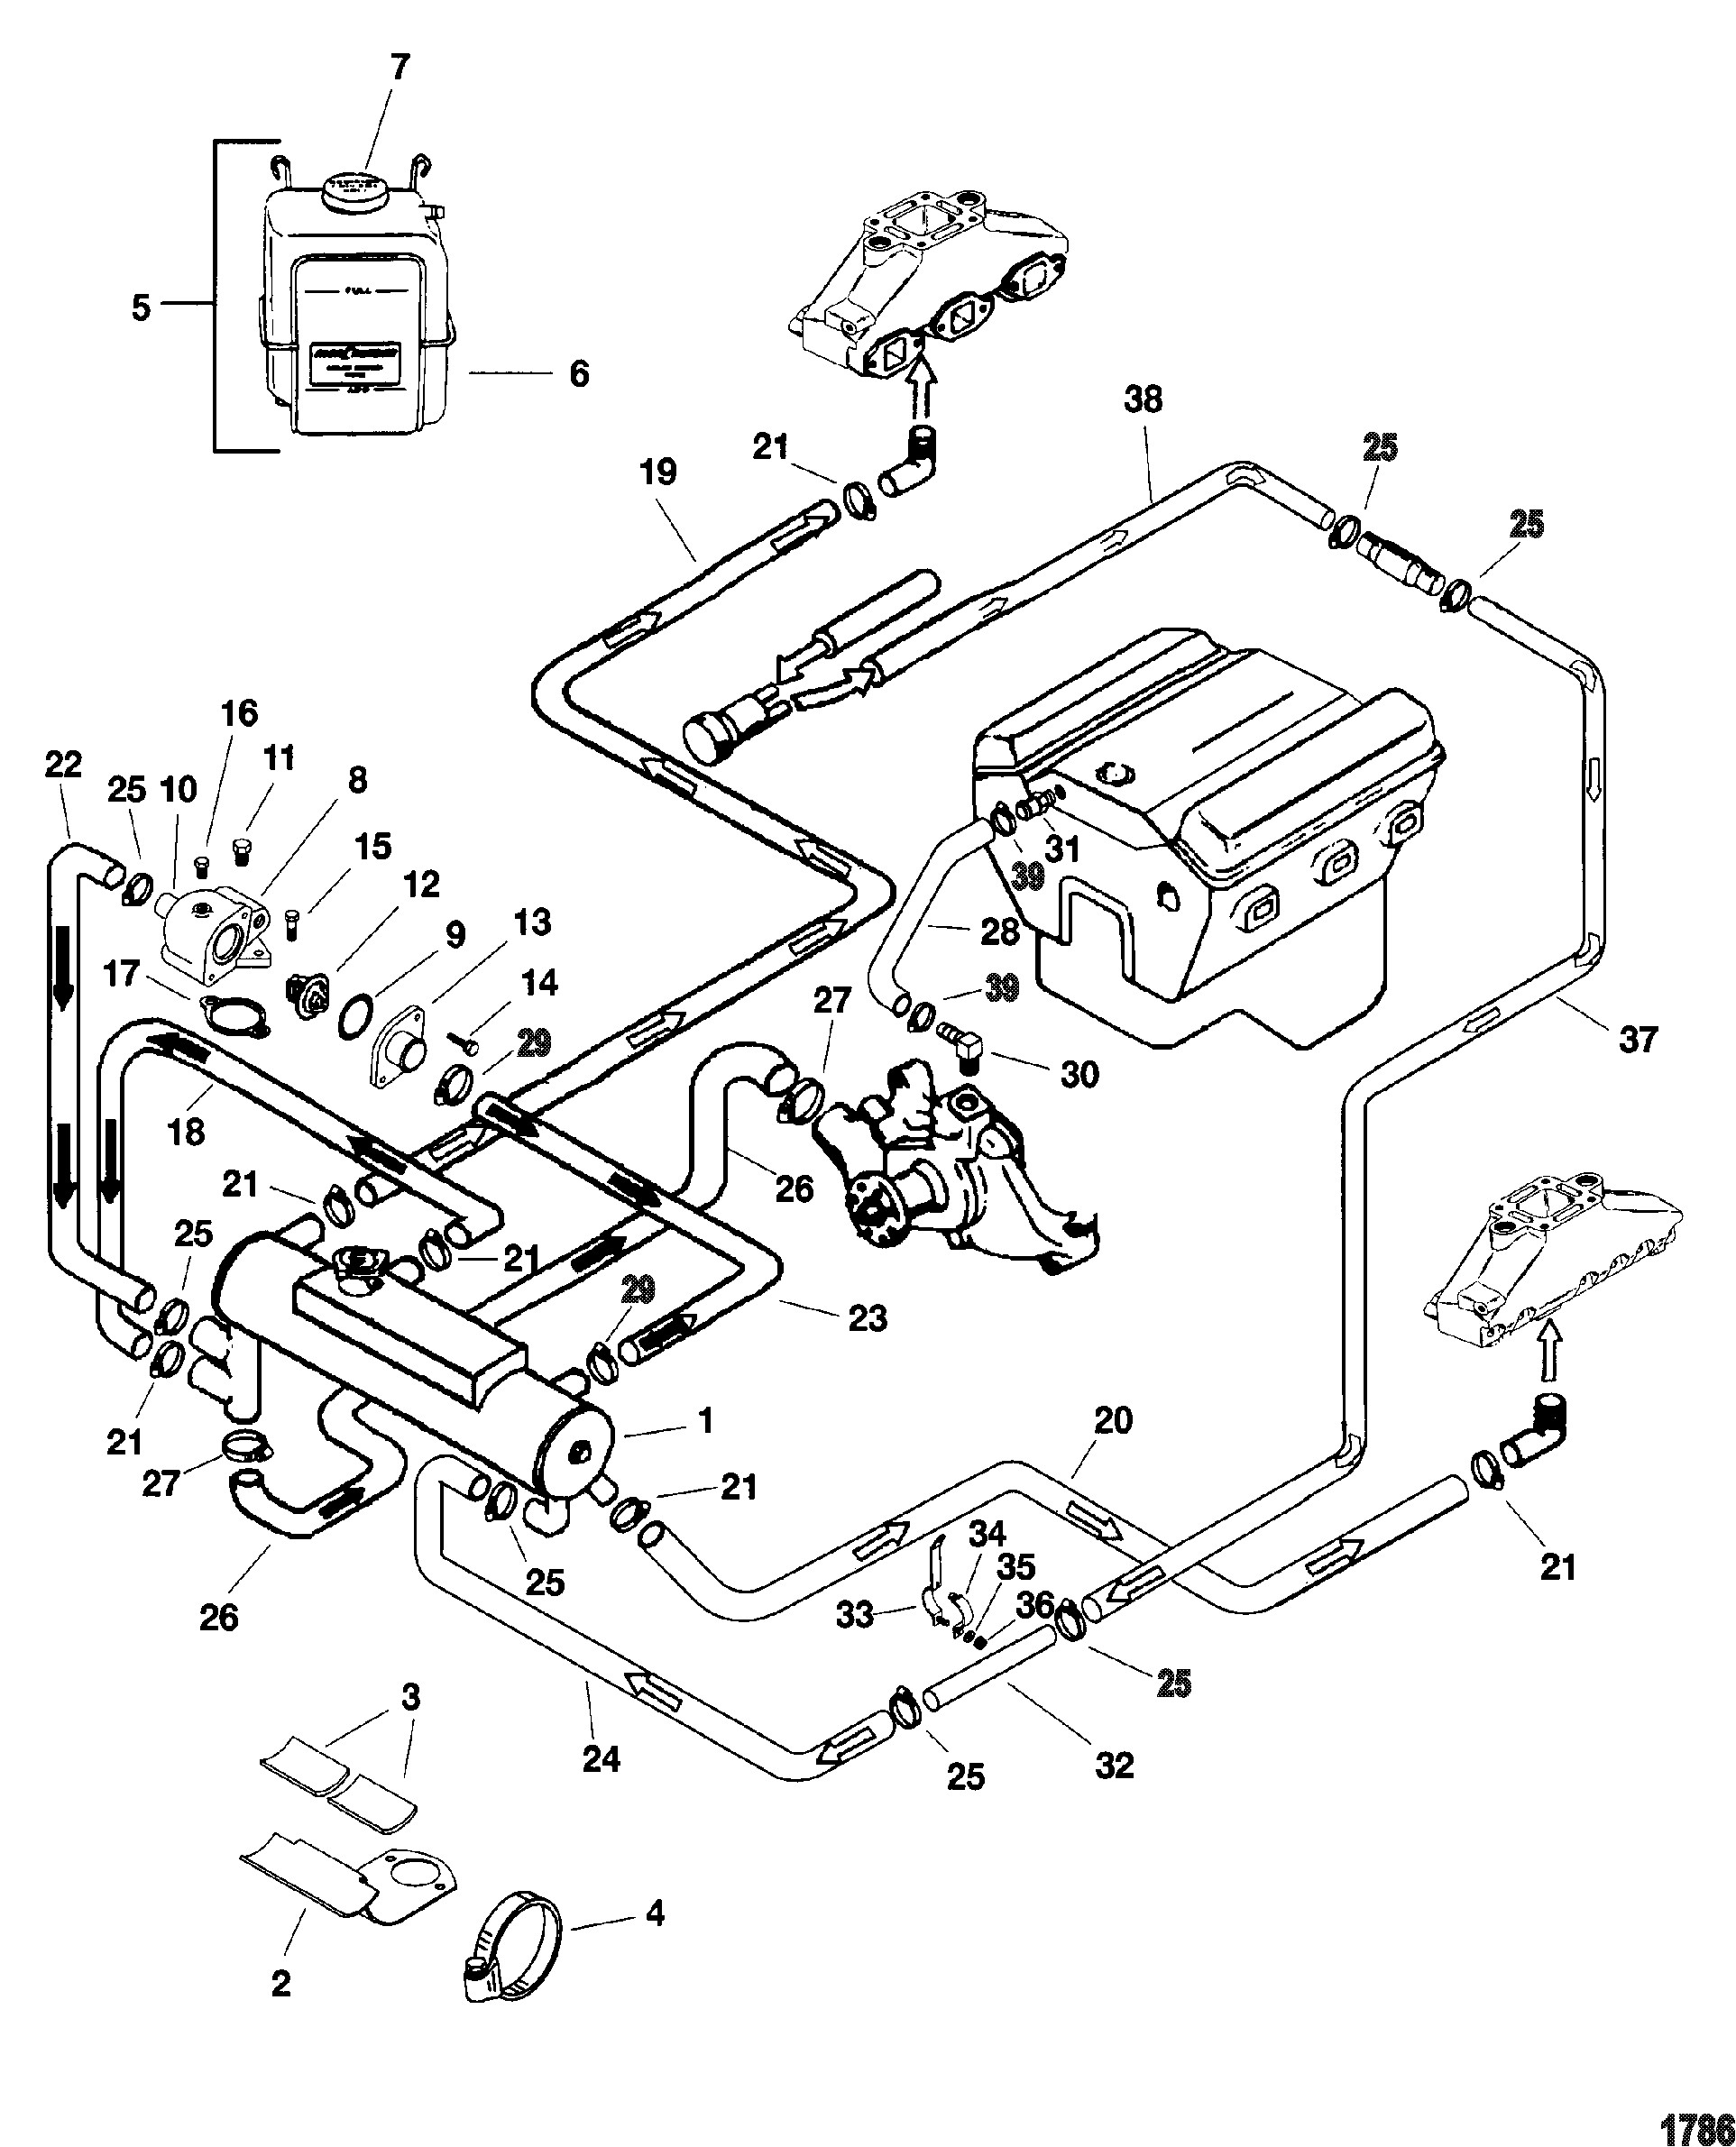 hight resolution of 1994 dodge engine diagrams 3 9 v6 automotive wiring diagrams 3 0 dodge coolant engine diagram